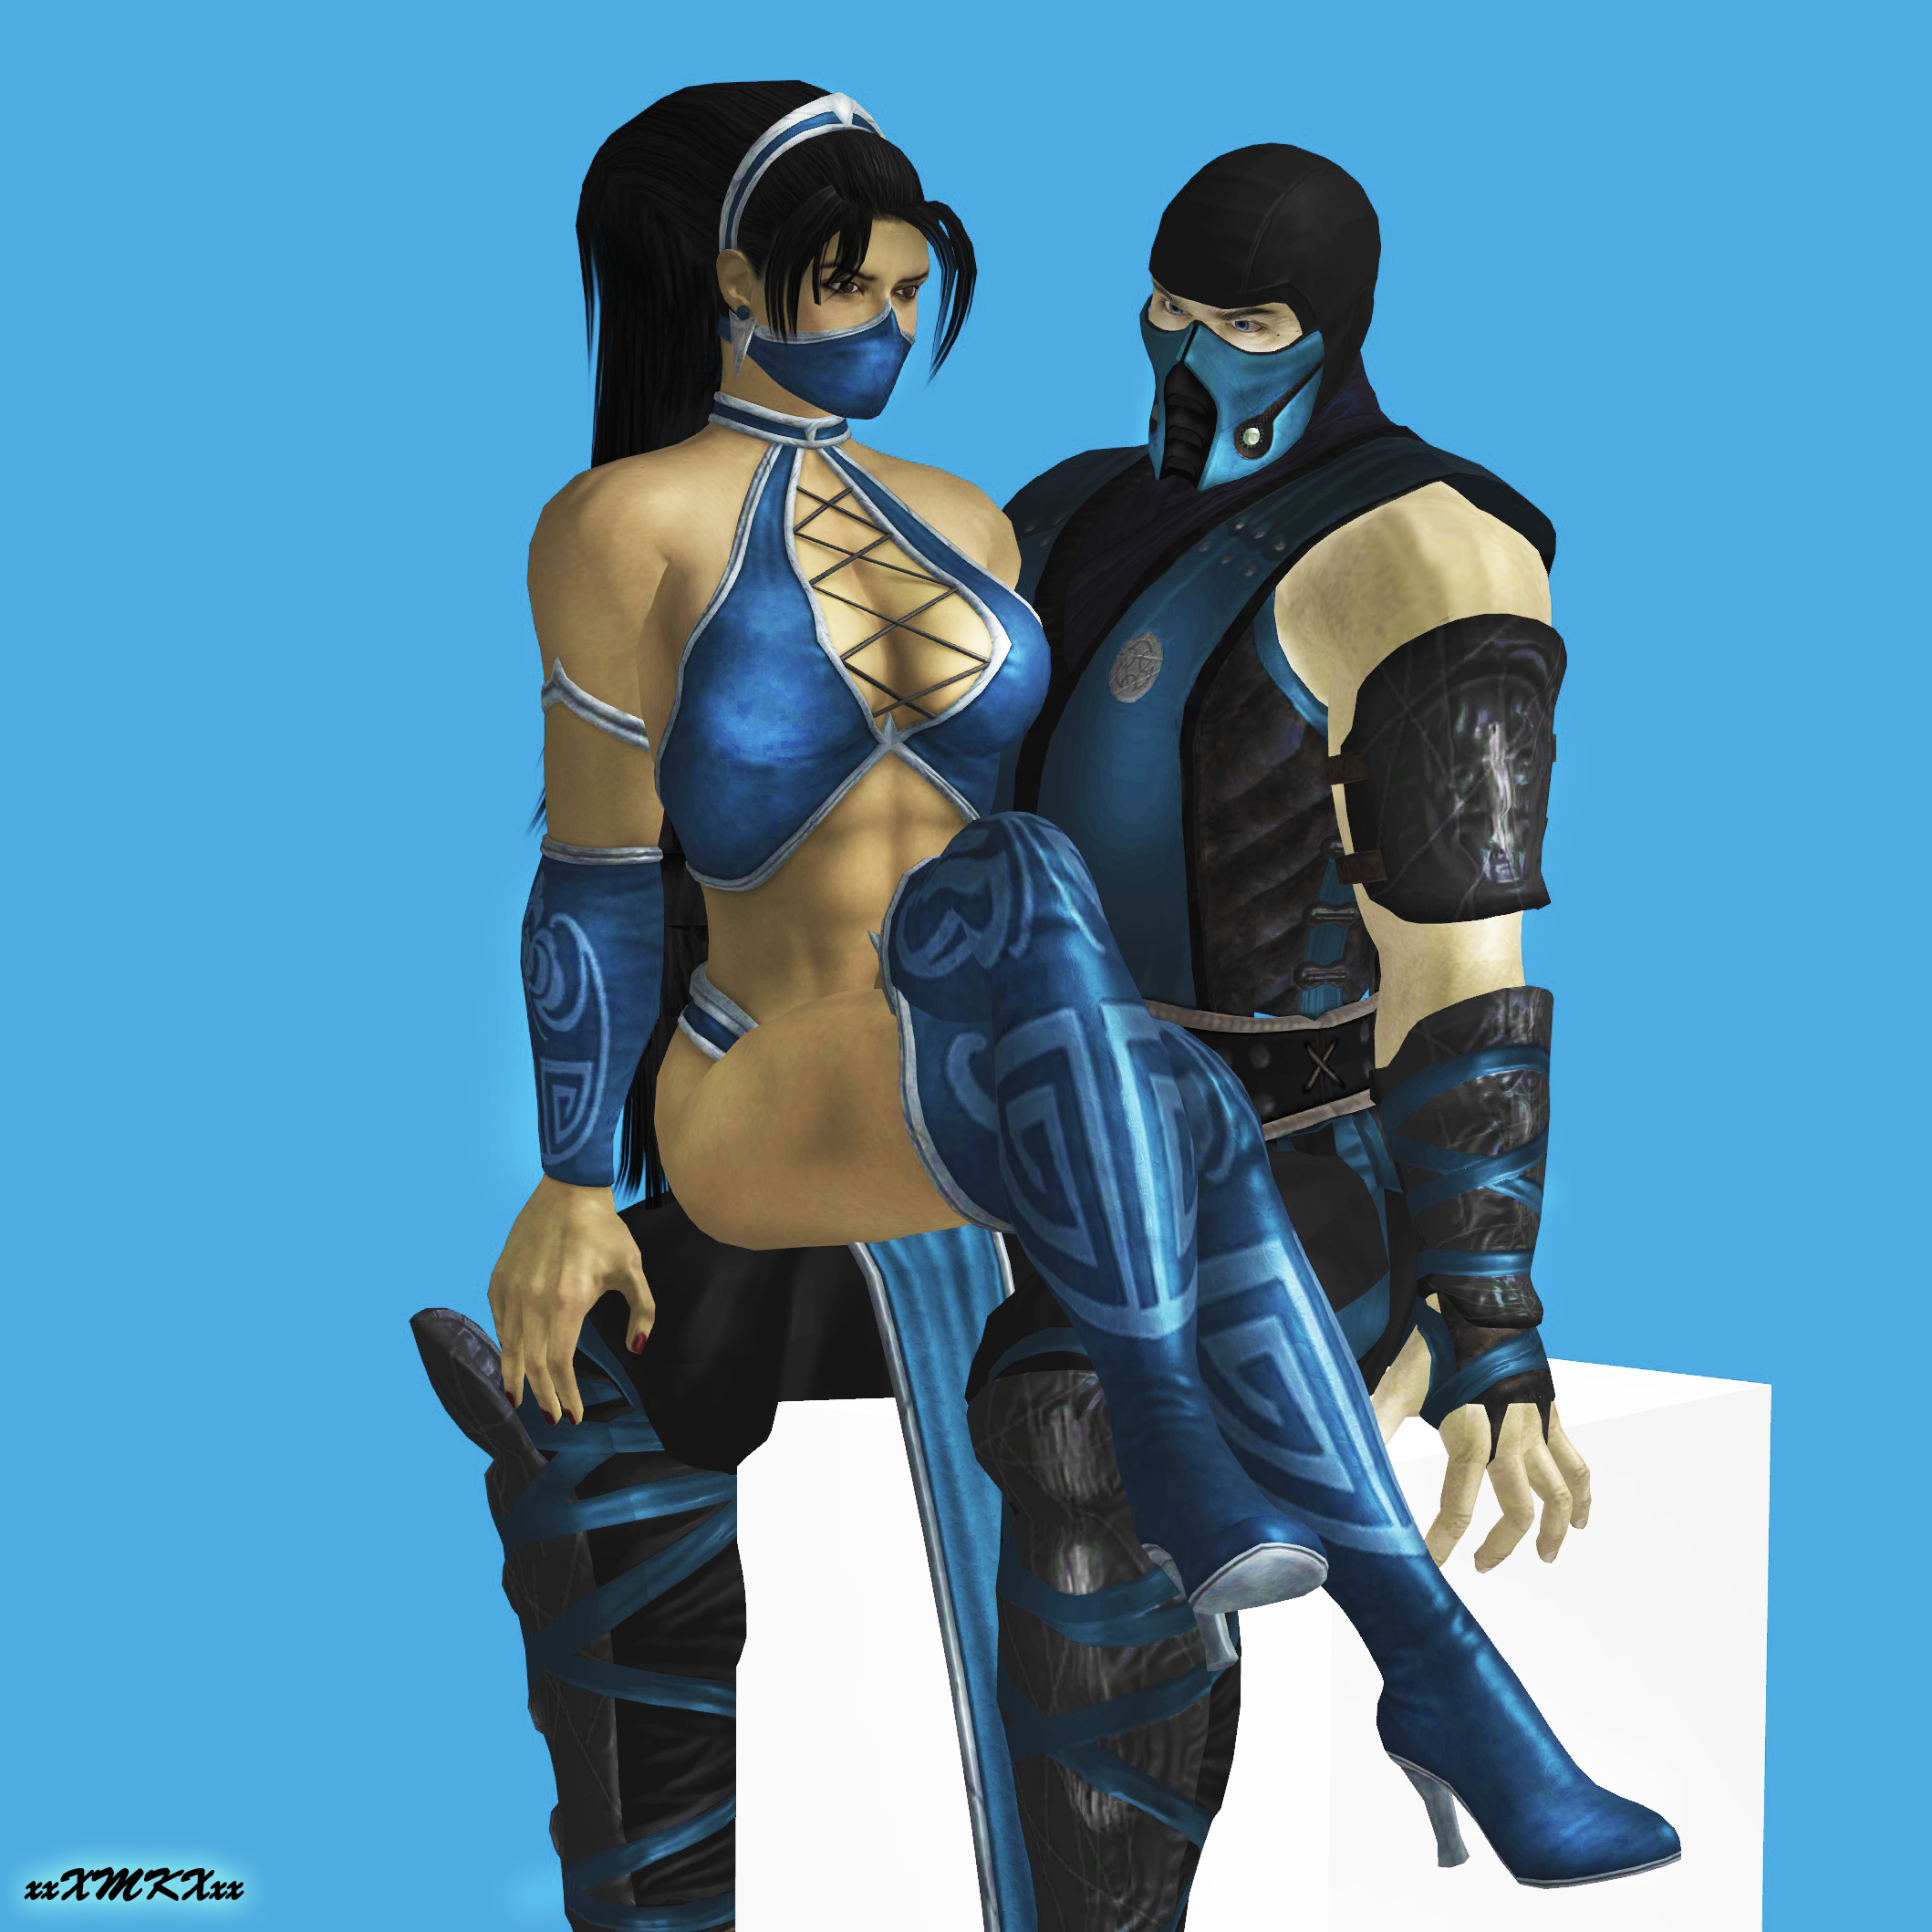 Subzero And Kitana Deviantart Gallery - Imagez co